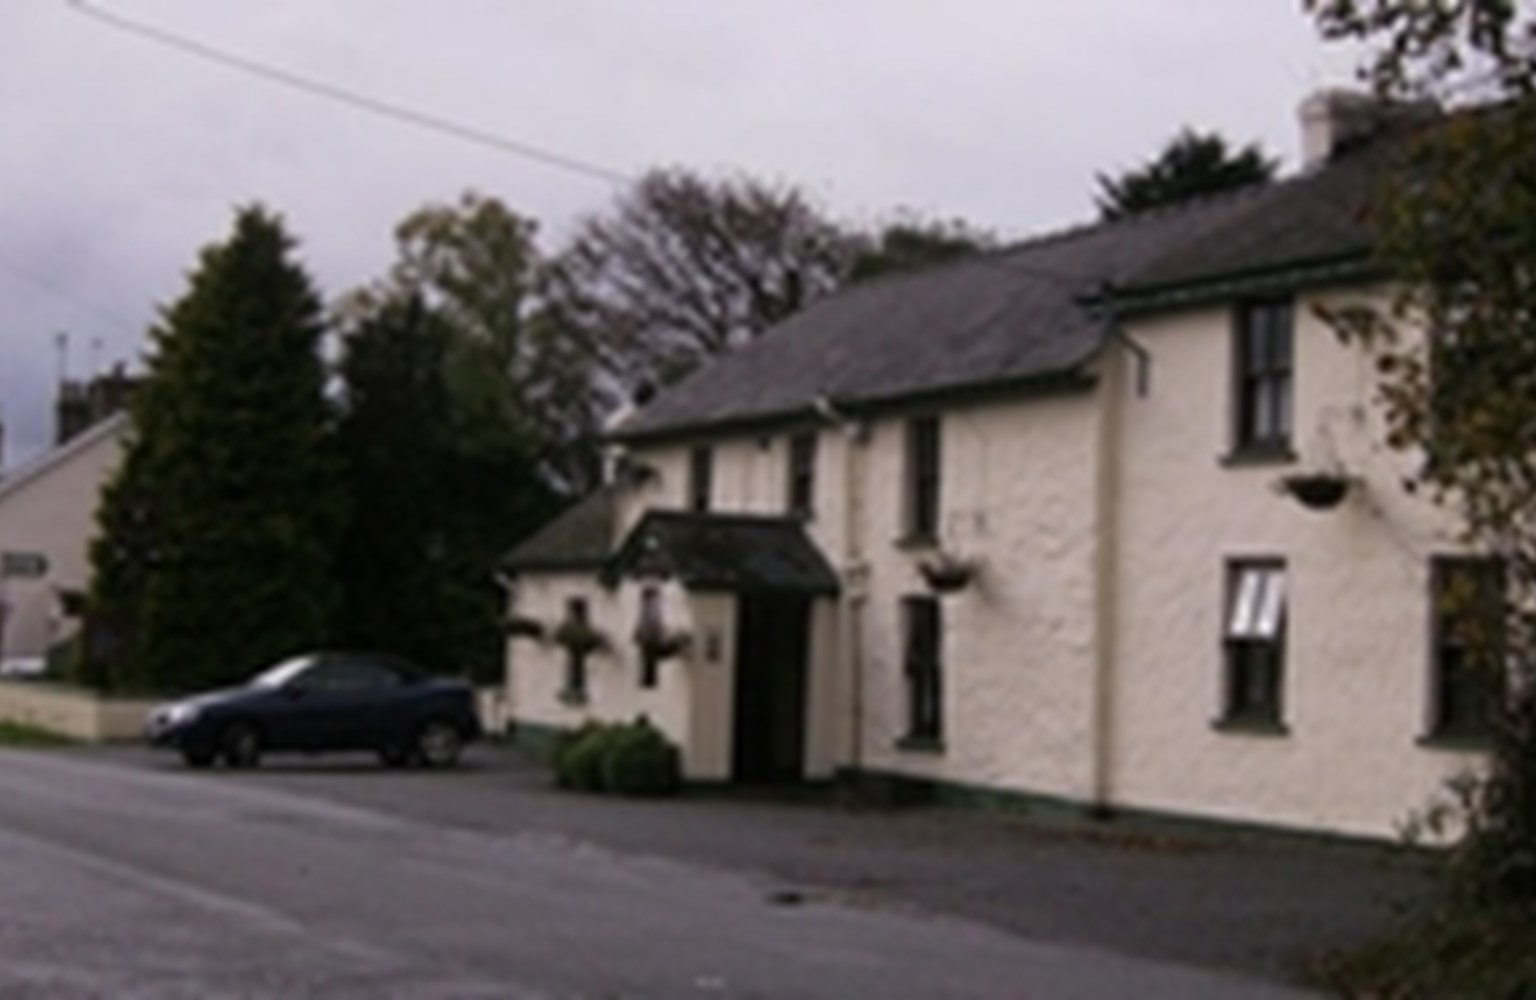 The Cross Inn, Clarbeston Road